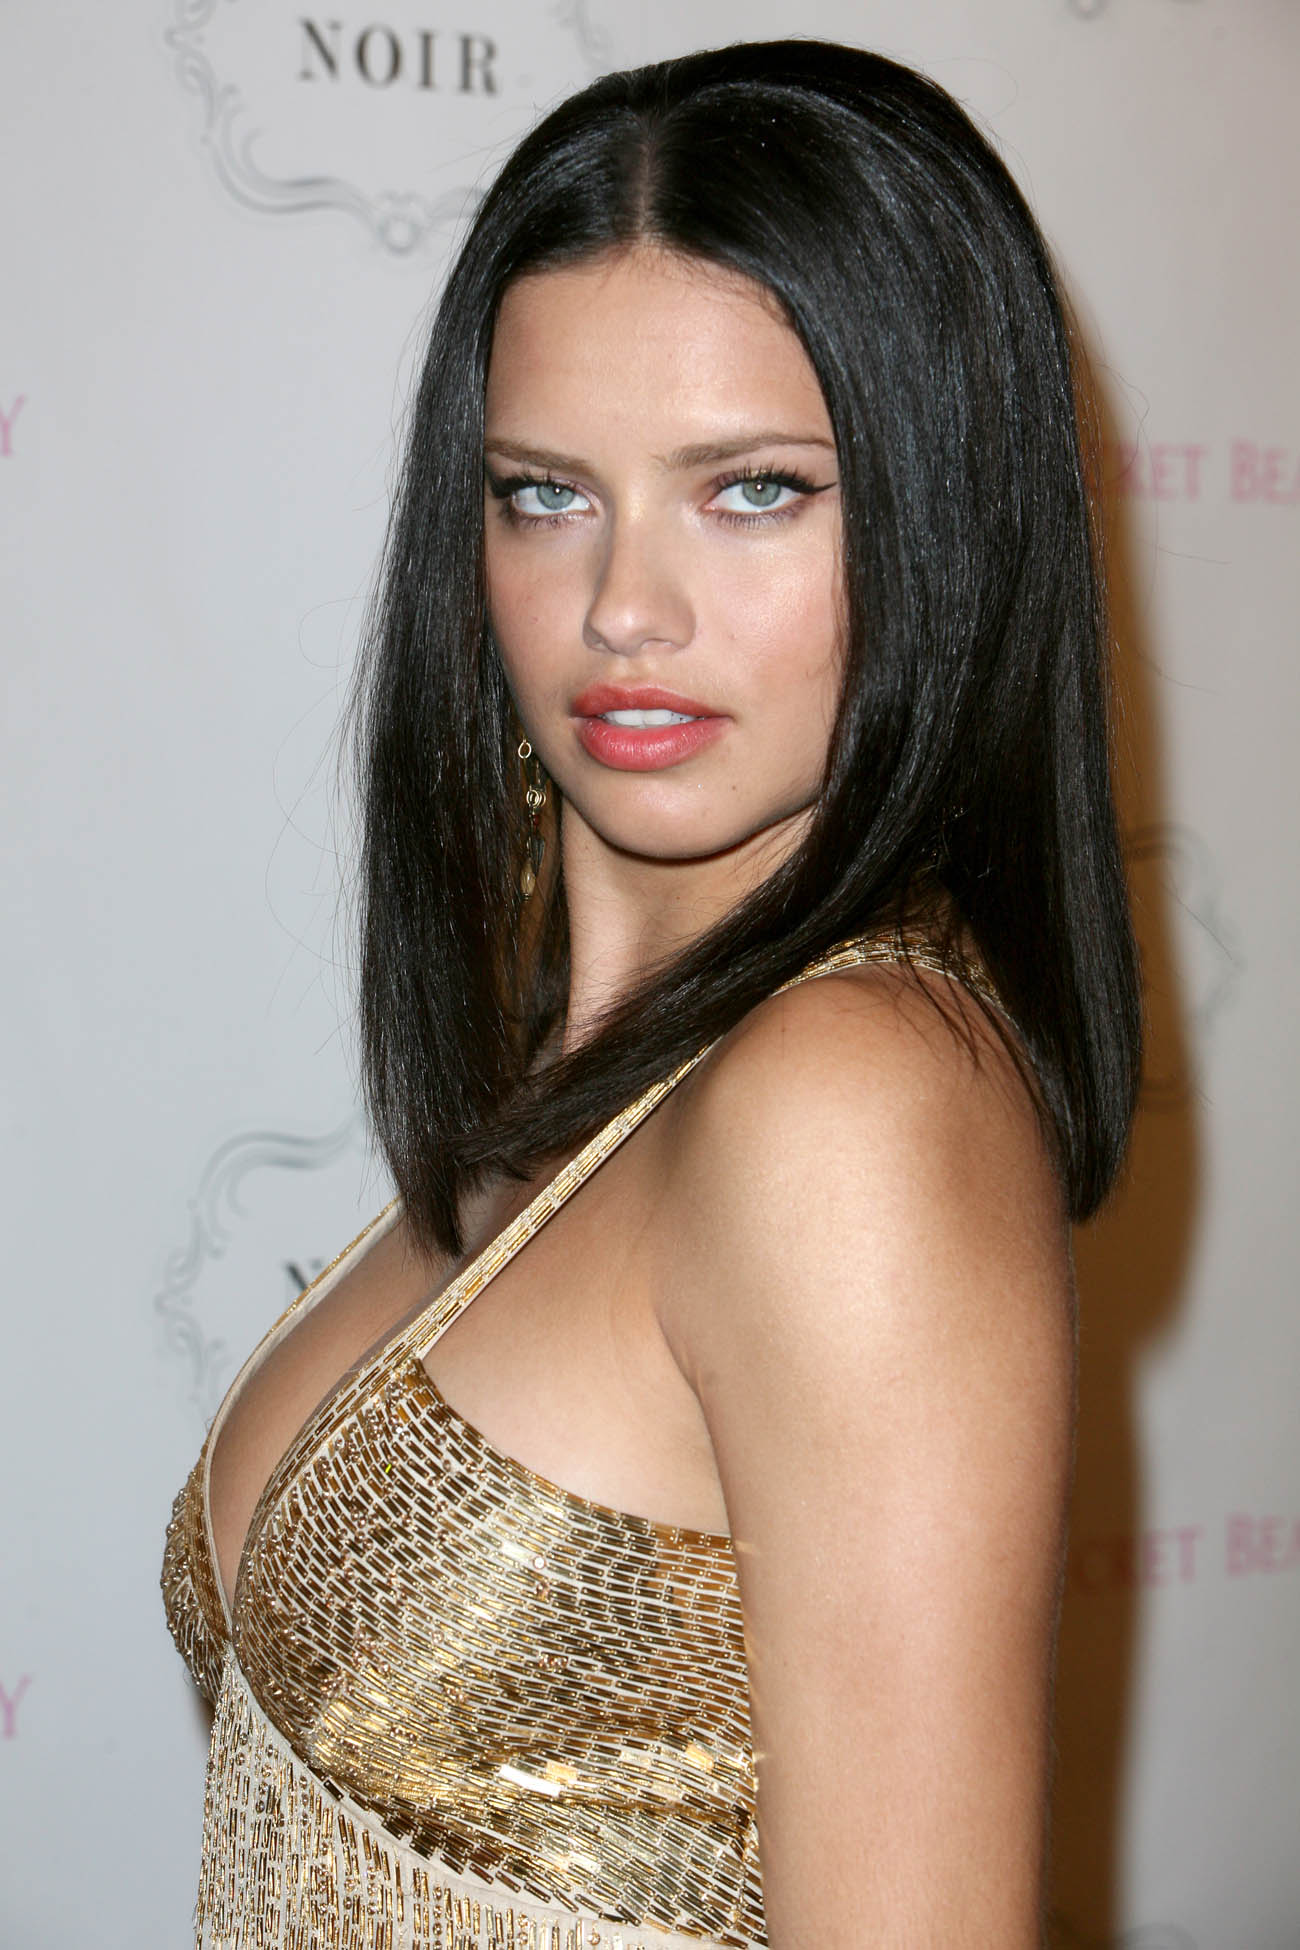 Celebrity adriana lima nudes (85 photo), Tits, Fappening, Instagram, braless 2020